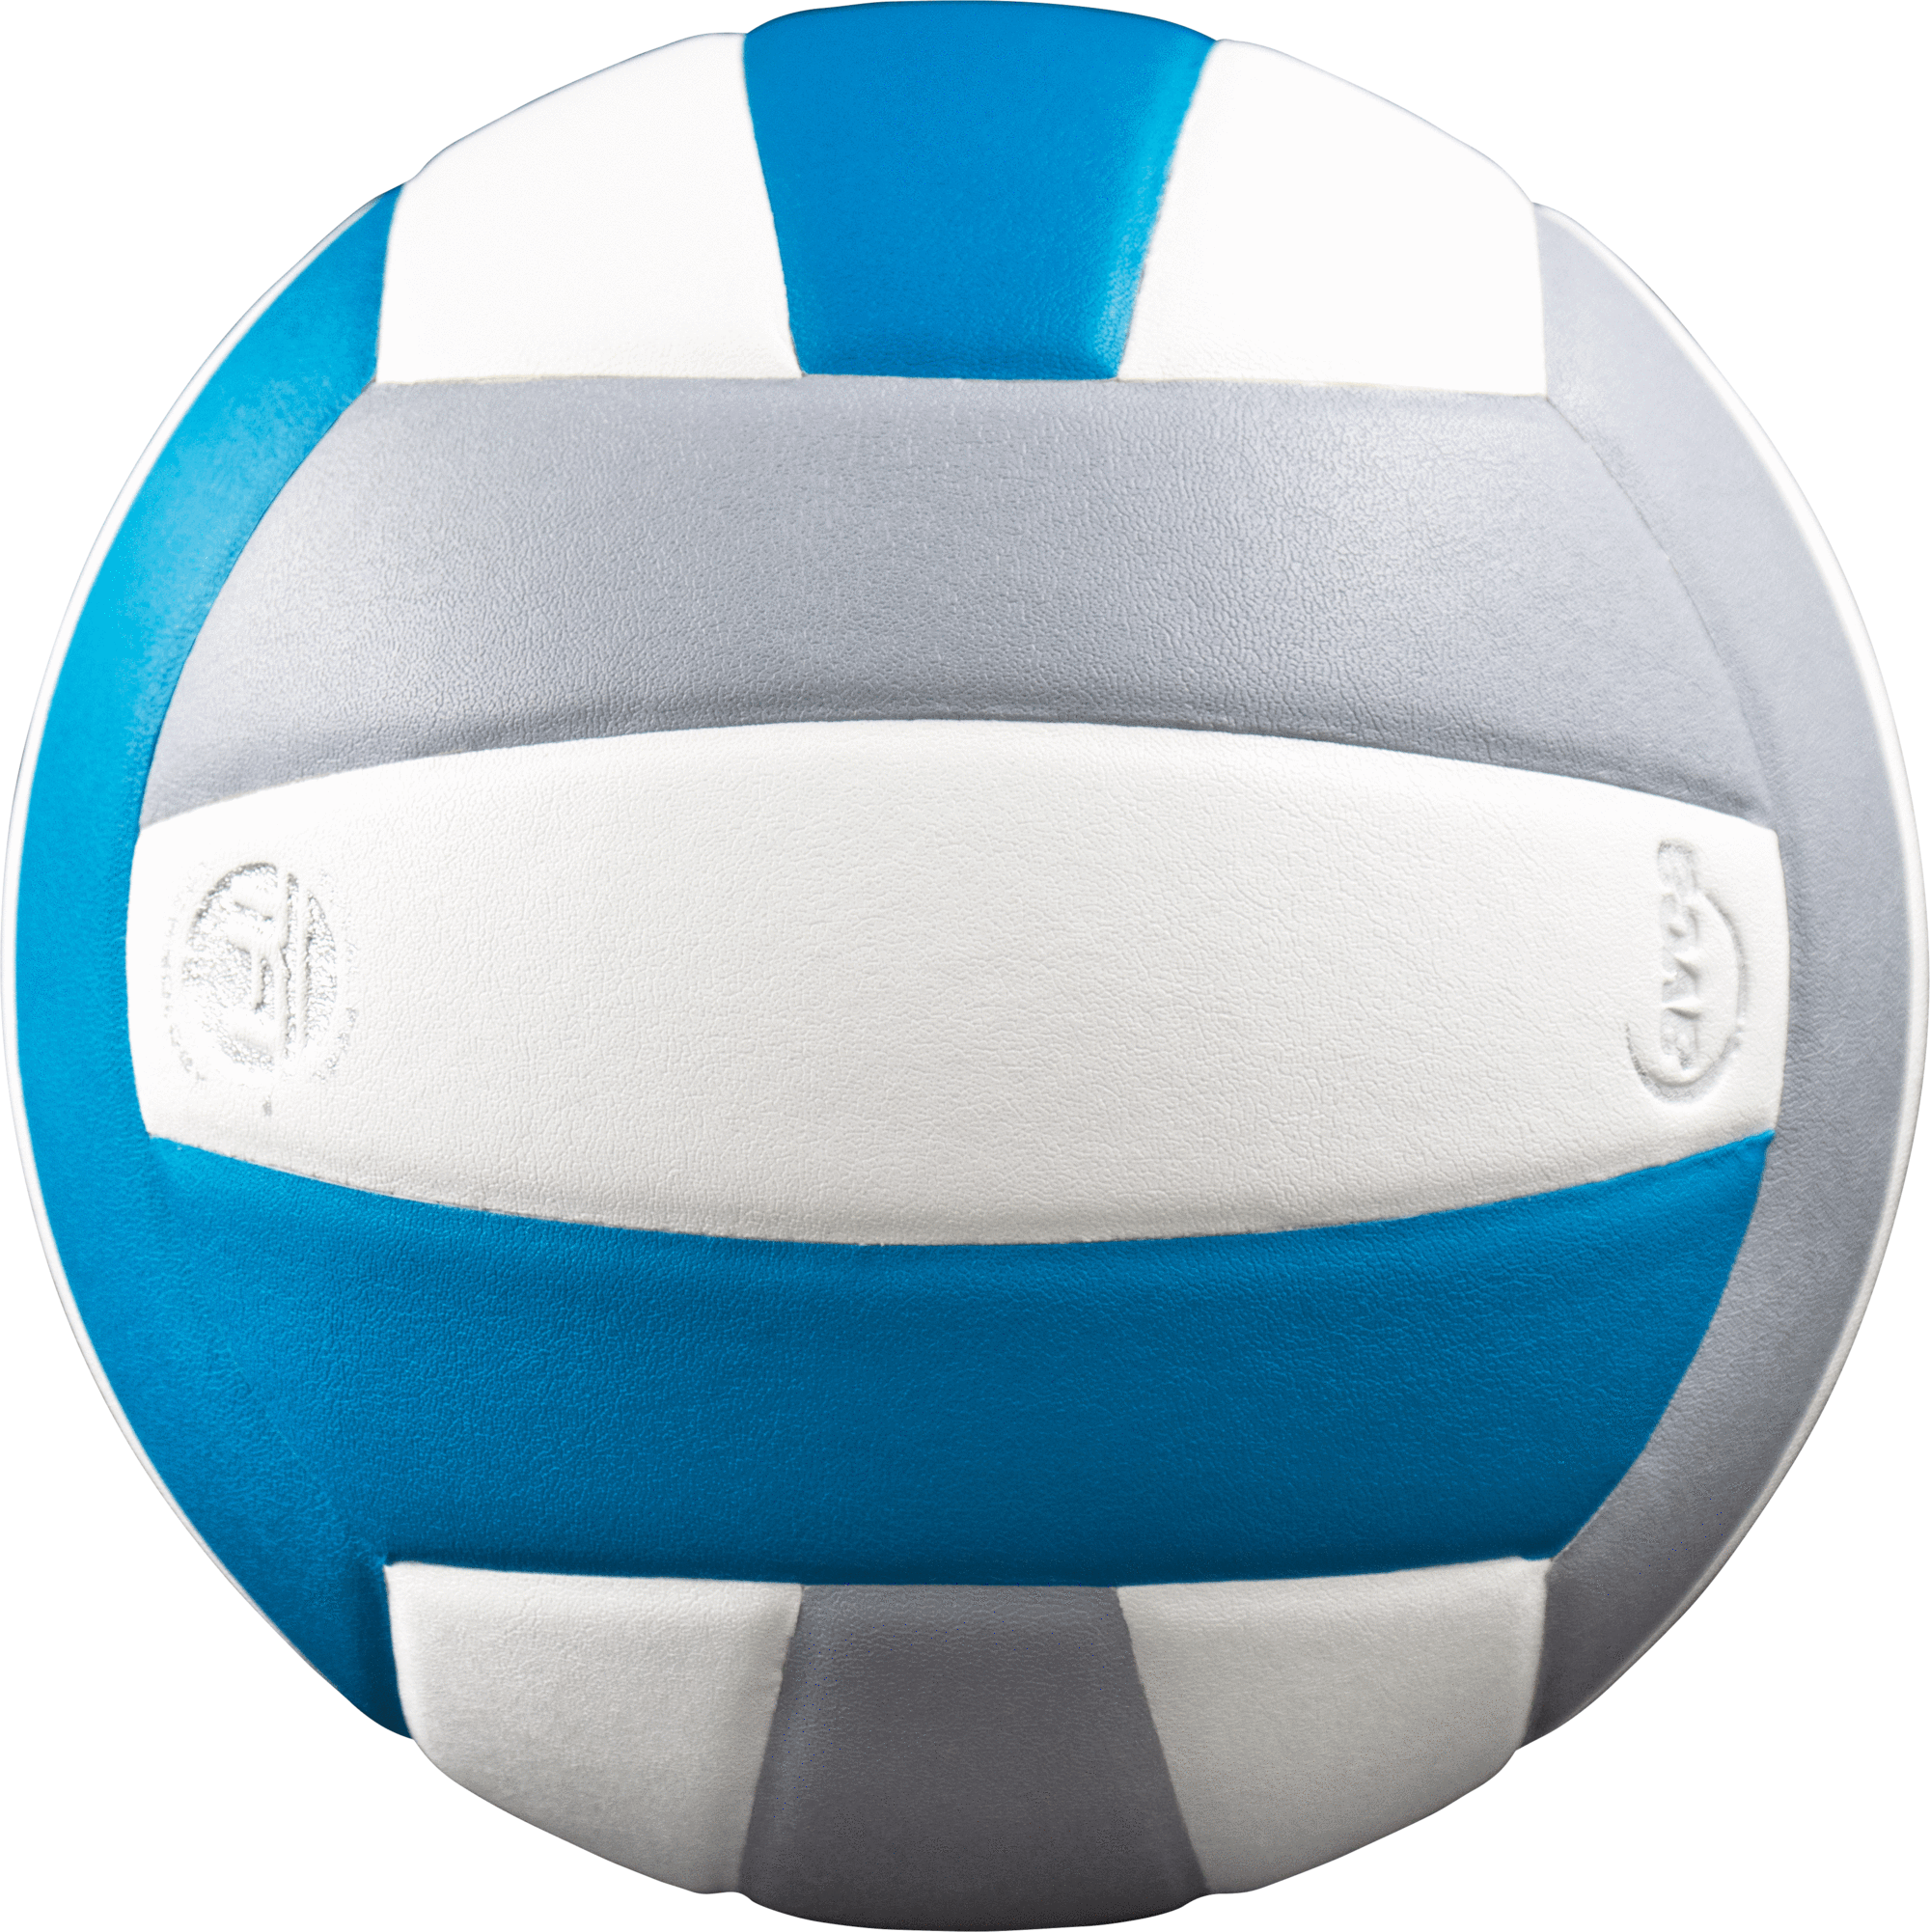 Most applicable positions volleyball. Volleyball court in